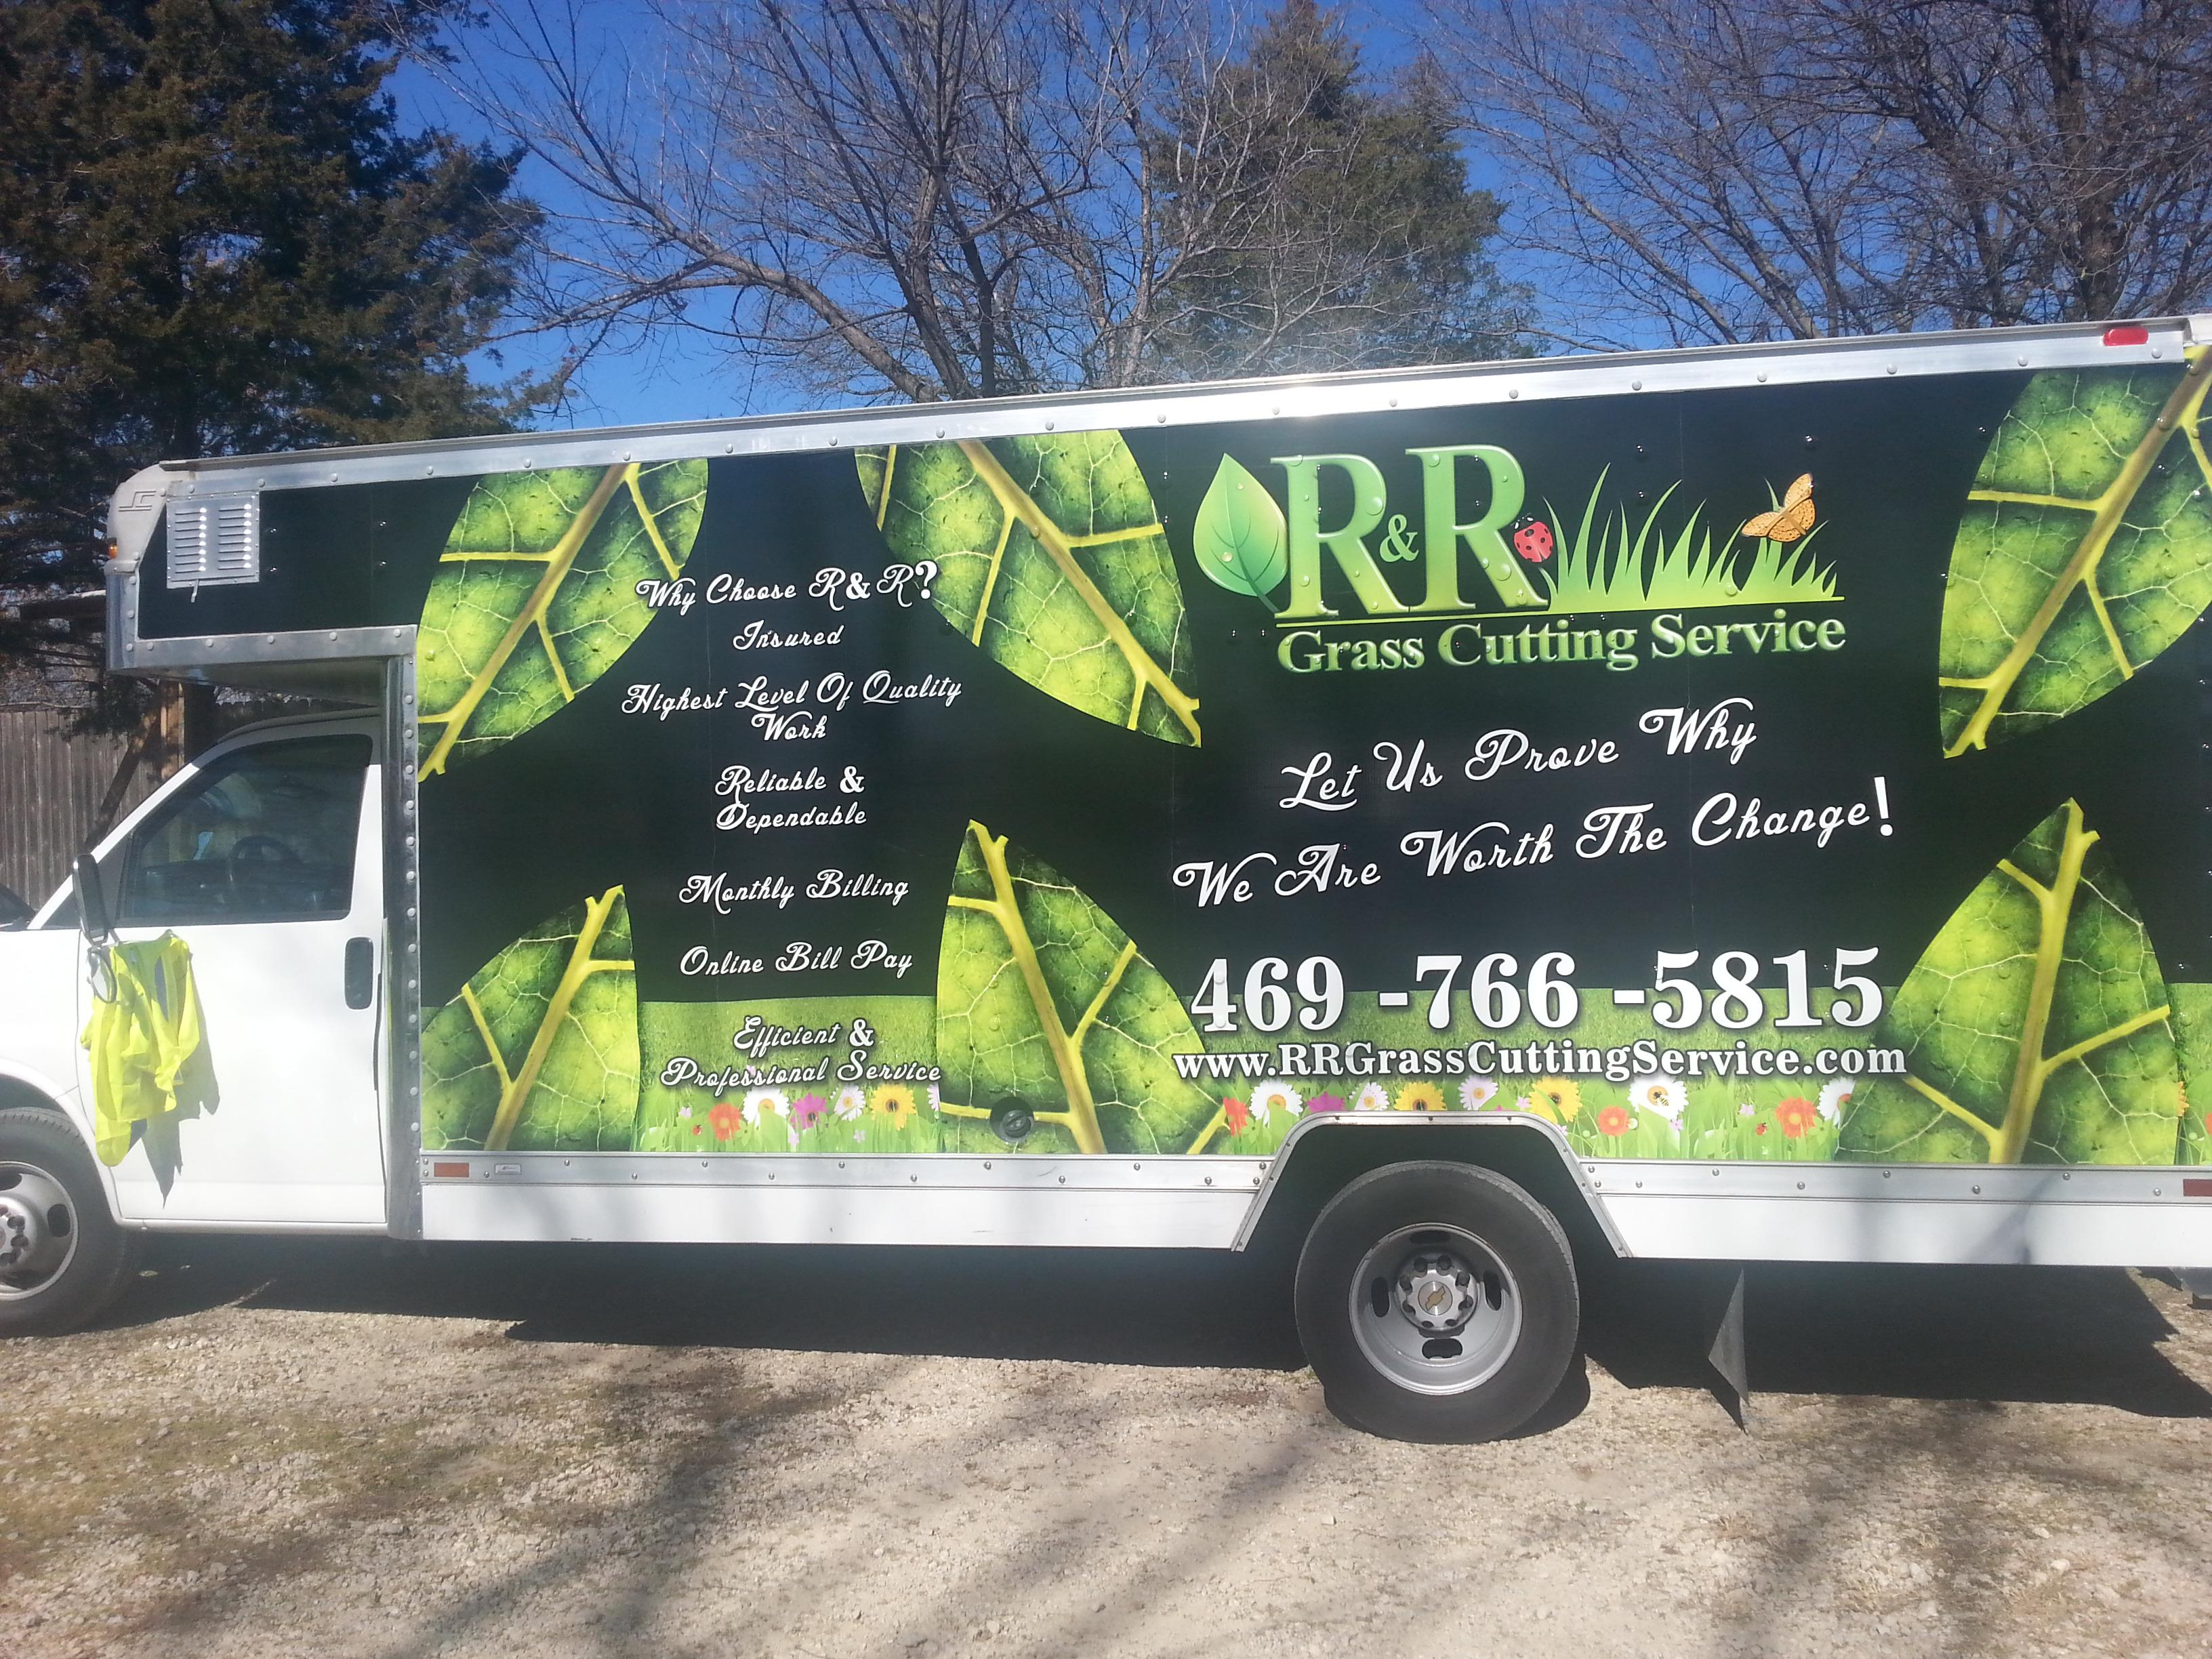 All R&R Trucks are all branded, so you always know who servicing your lawn.